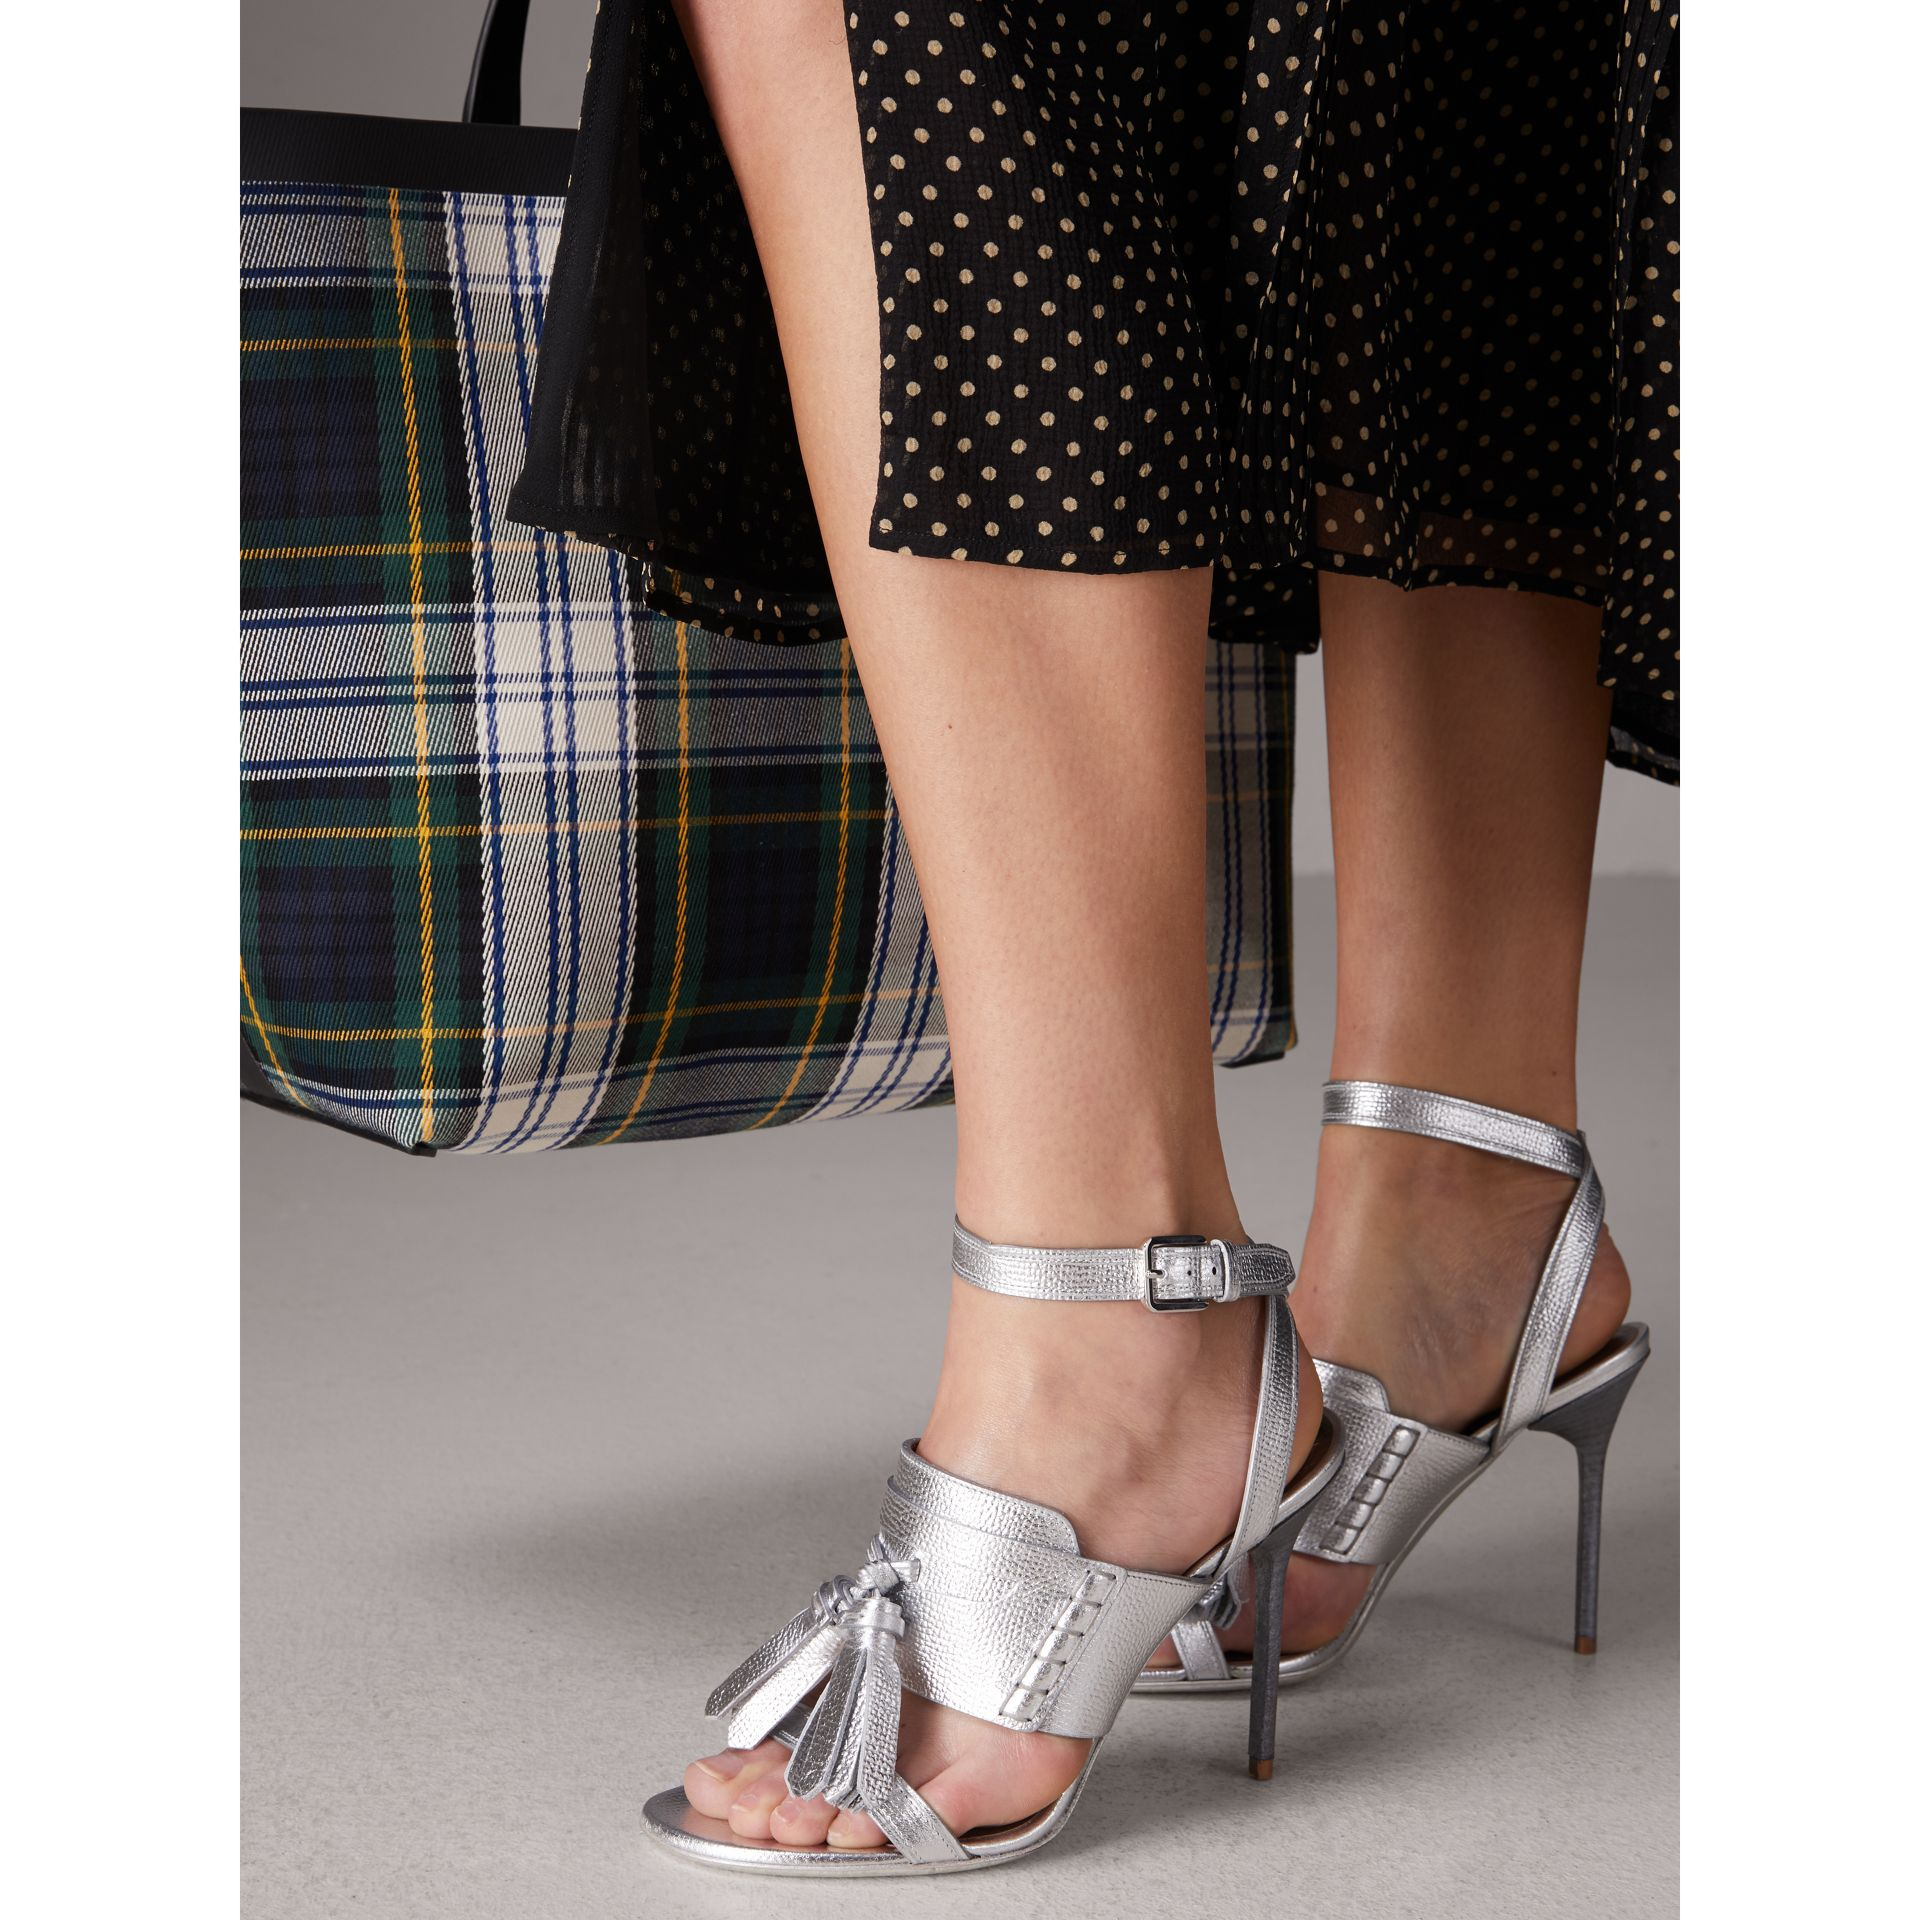 Tasselled Metallic Leather Sandals in Silver - Women | Burberry United States - gallery image 2